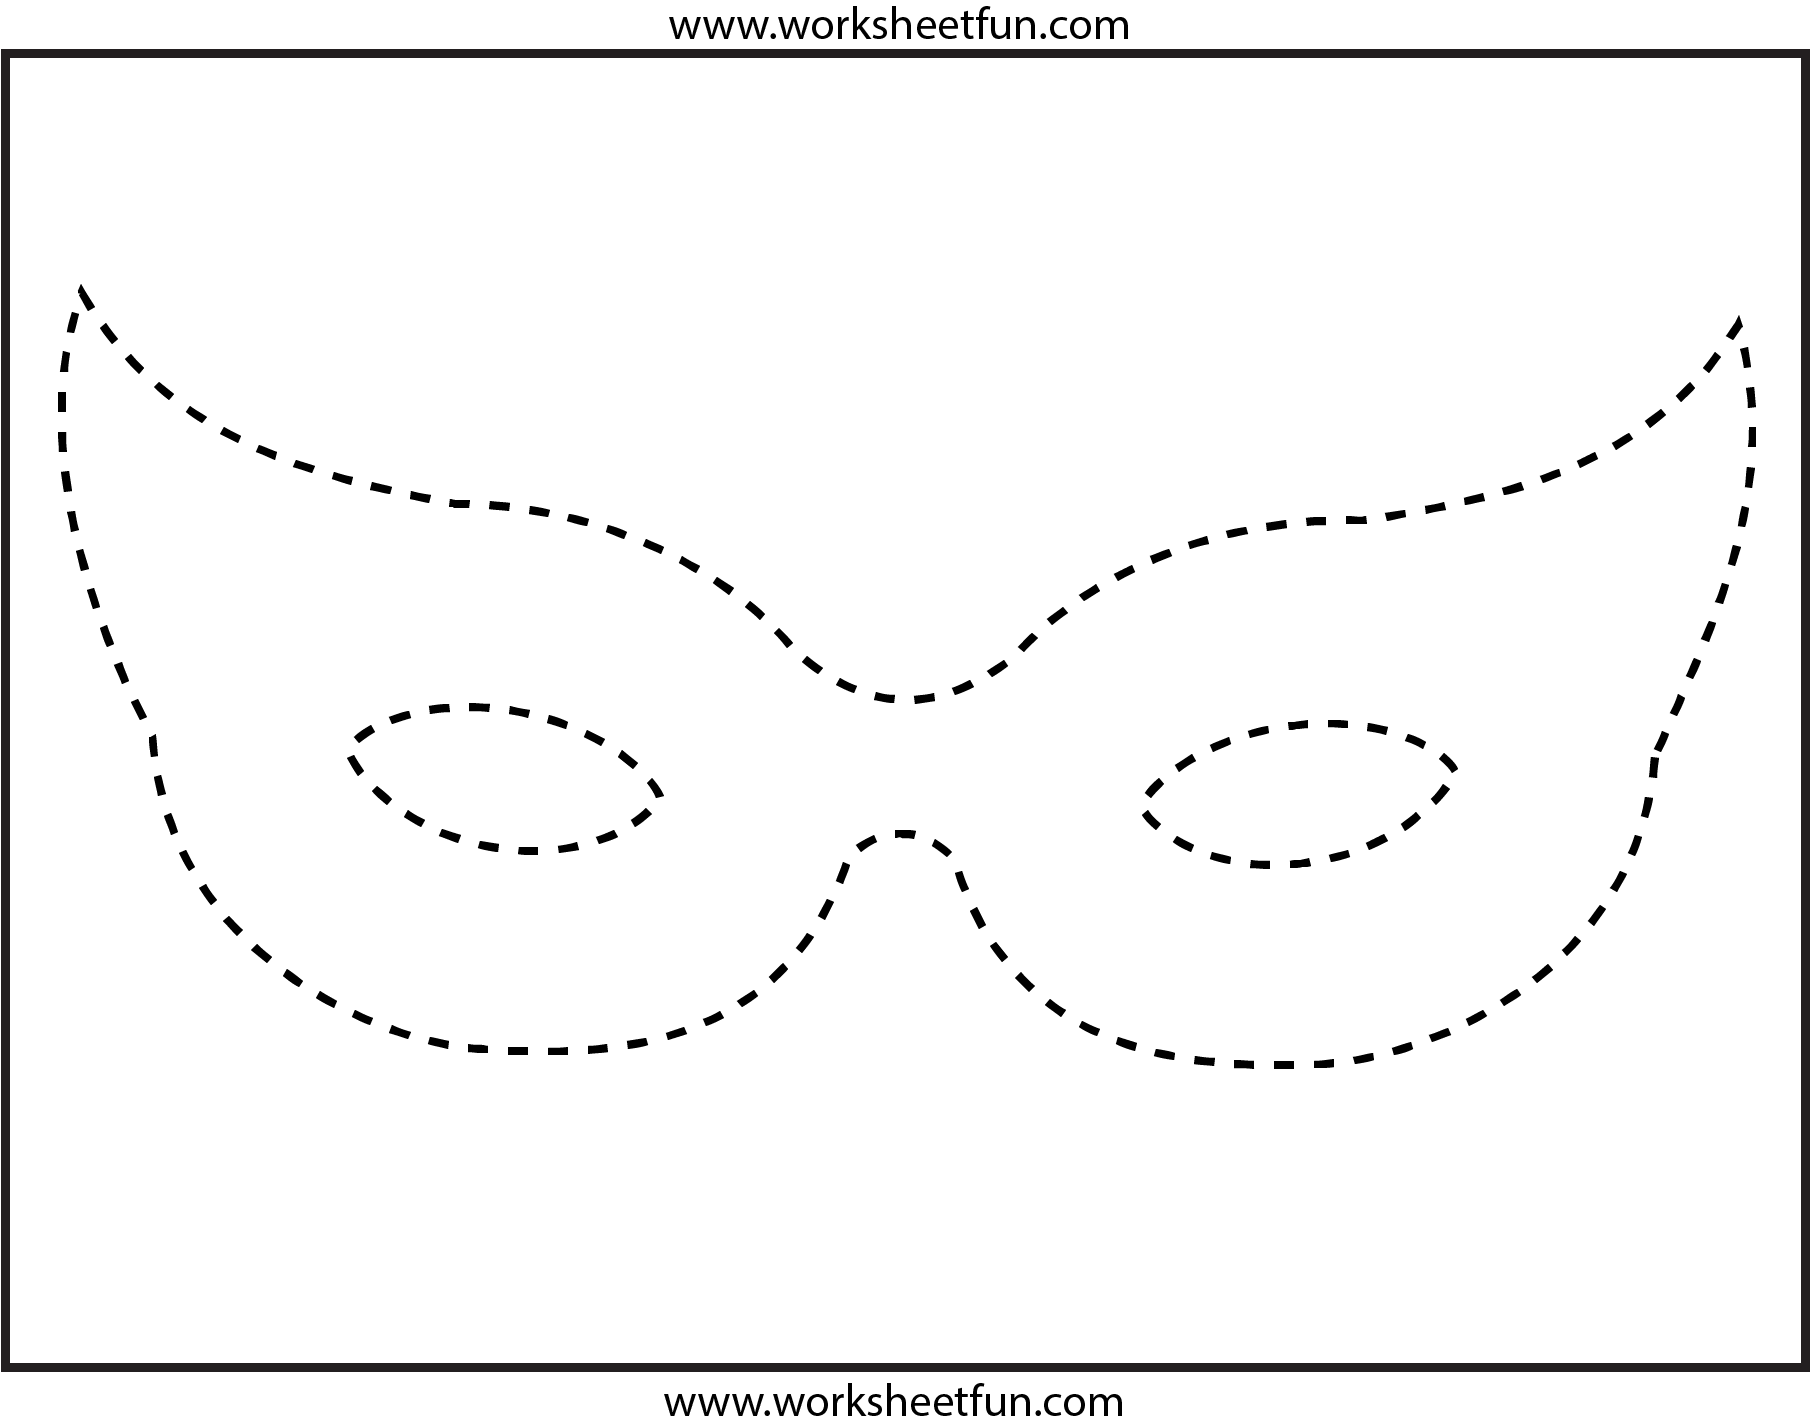 Mask Tracing 1 Worksheet Free Printable Worksheets